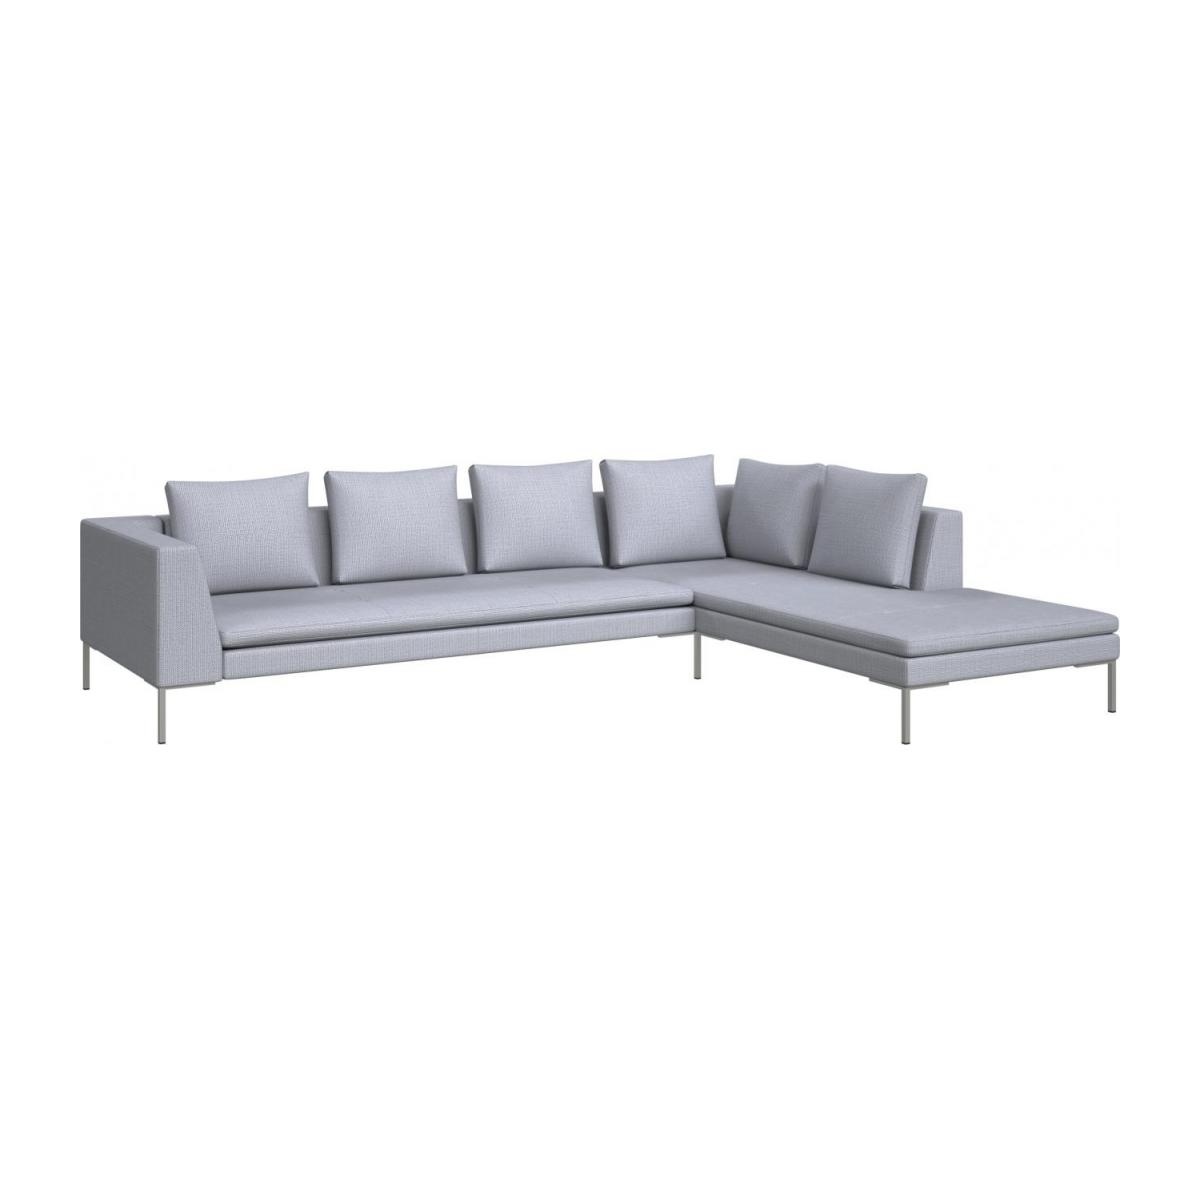 3 seater sofa with chaise longue on the right in Fasoli fabric, grey sky  n°1